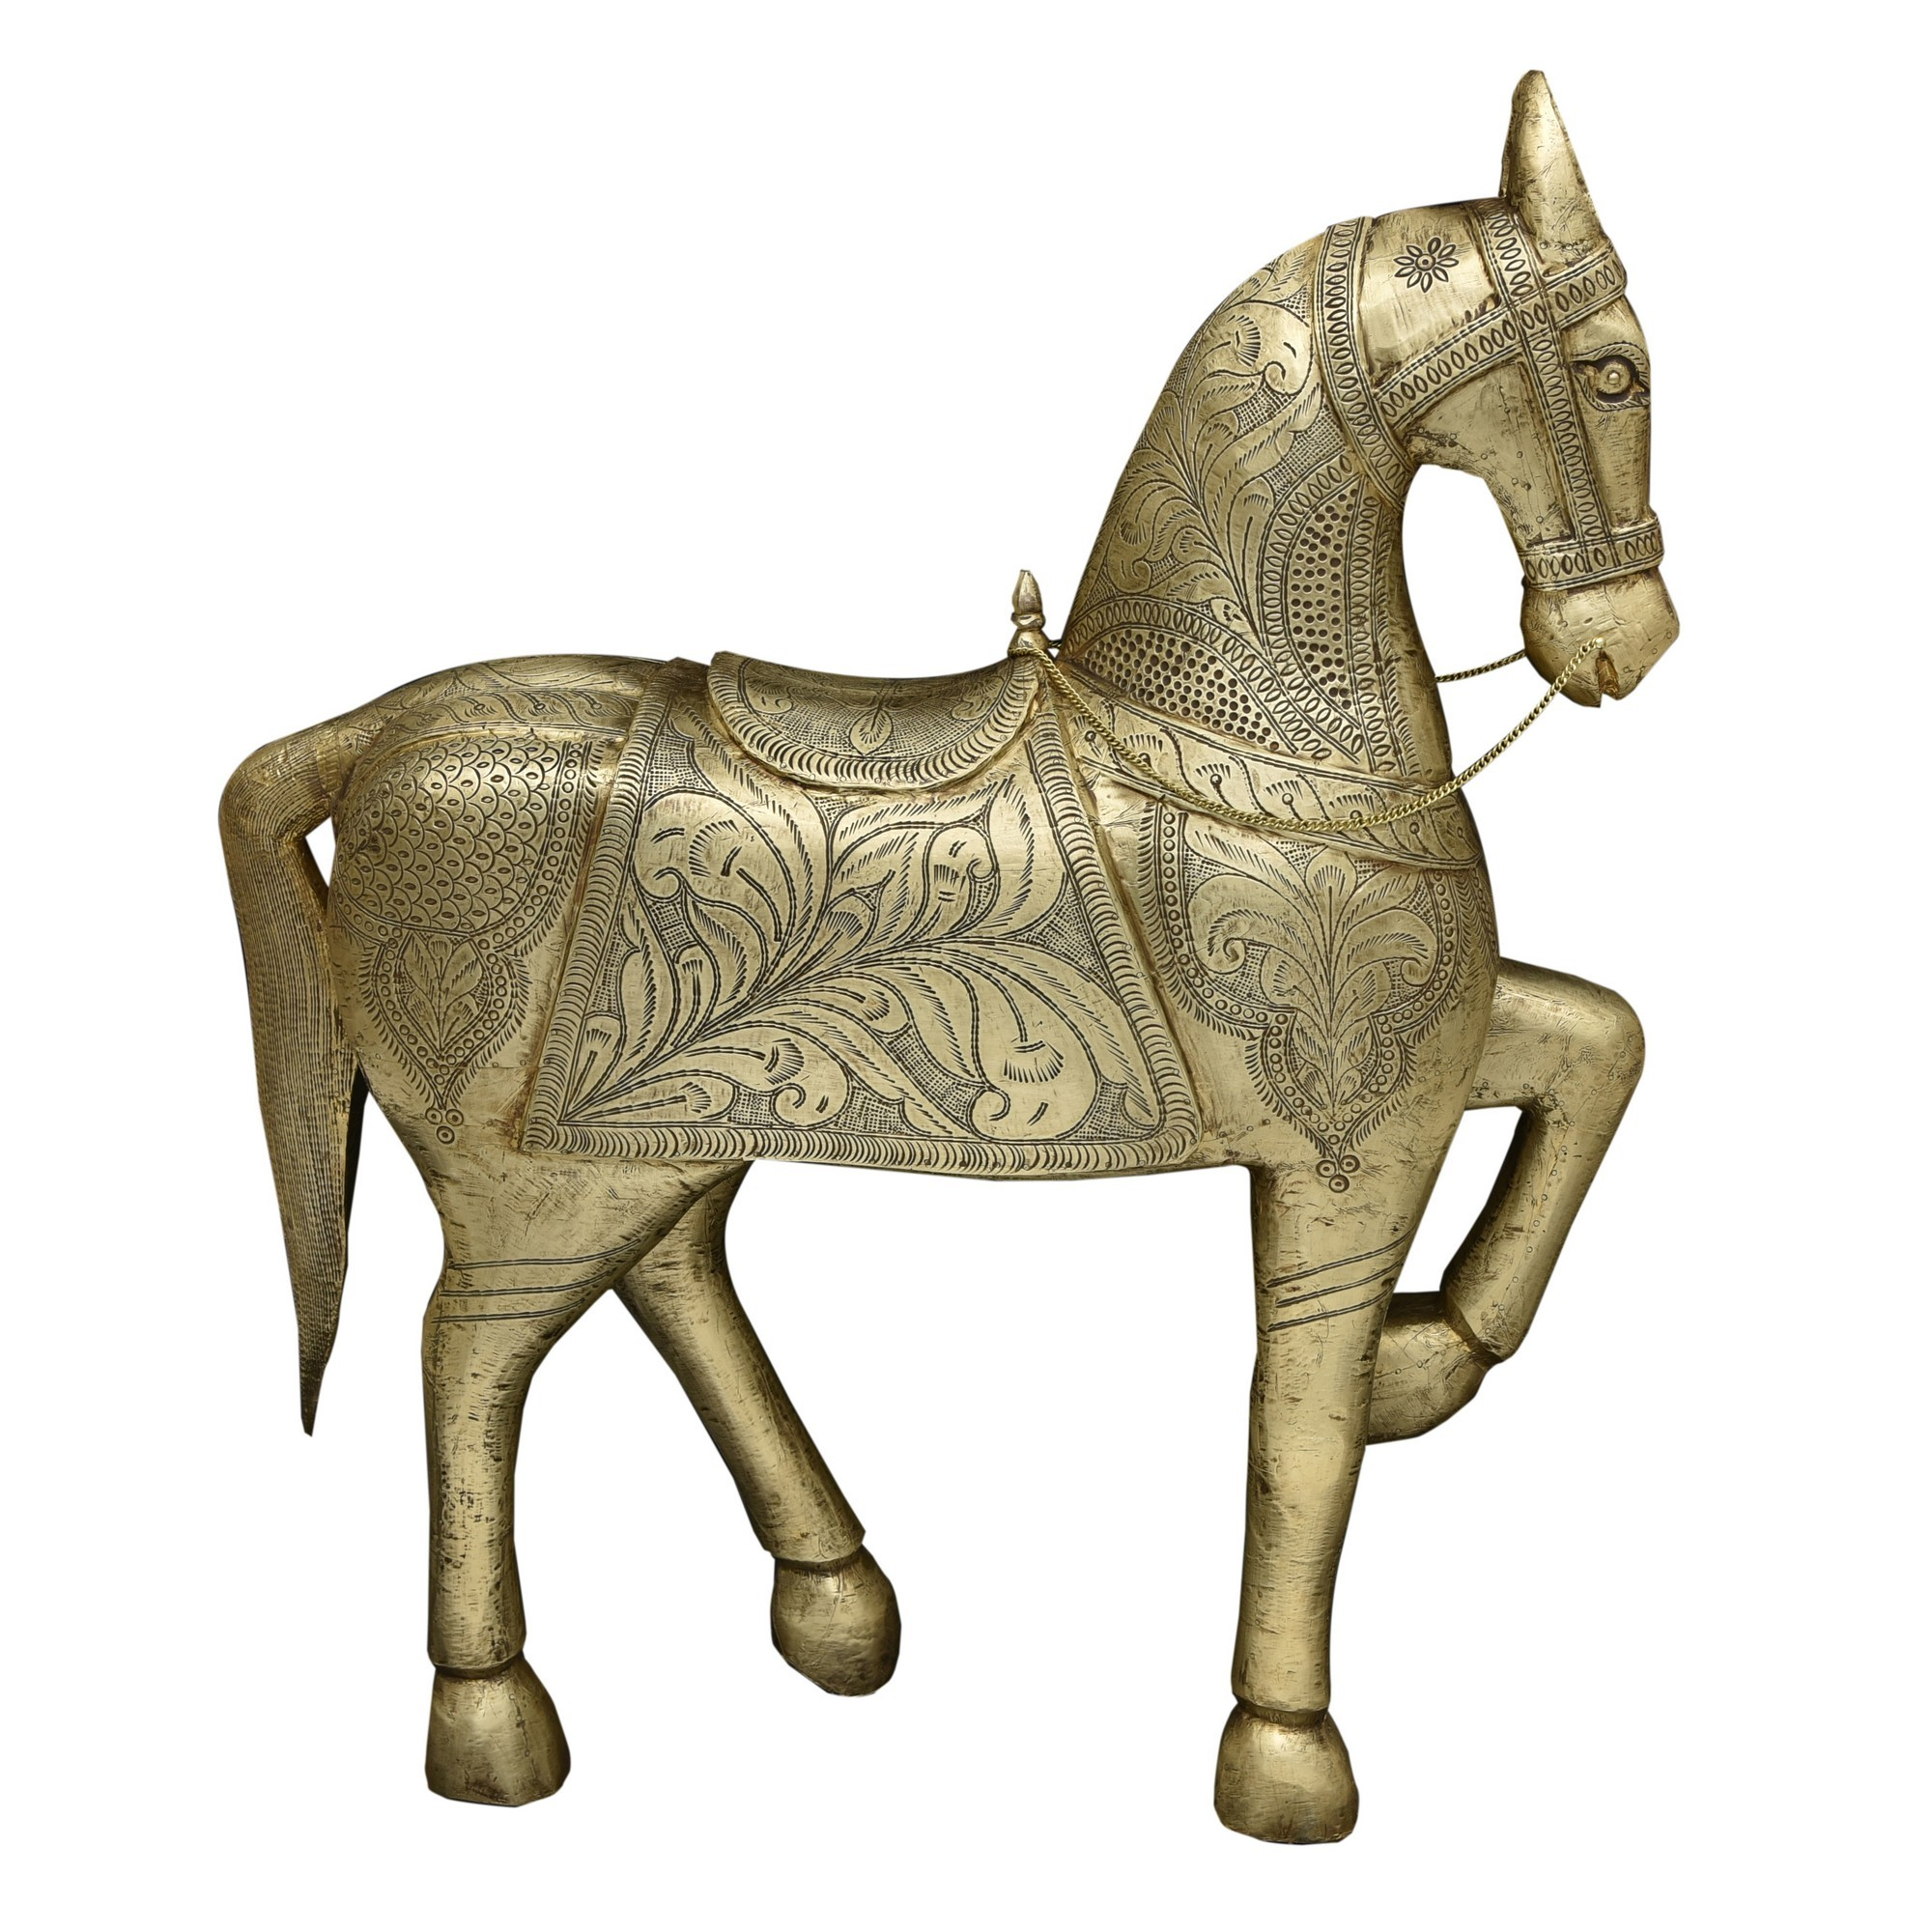 Rosseman Handcrafted Metal Horse Sculpture